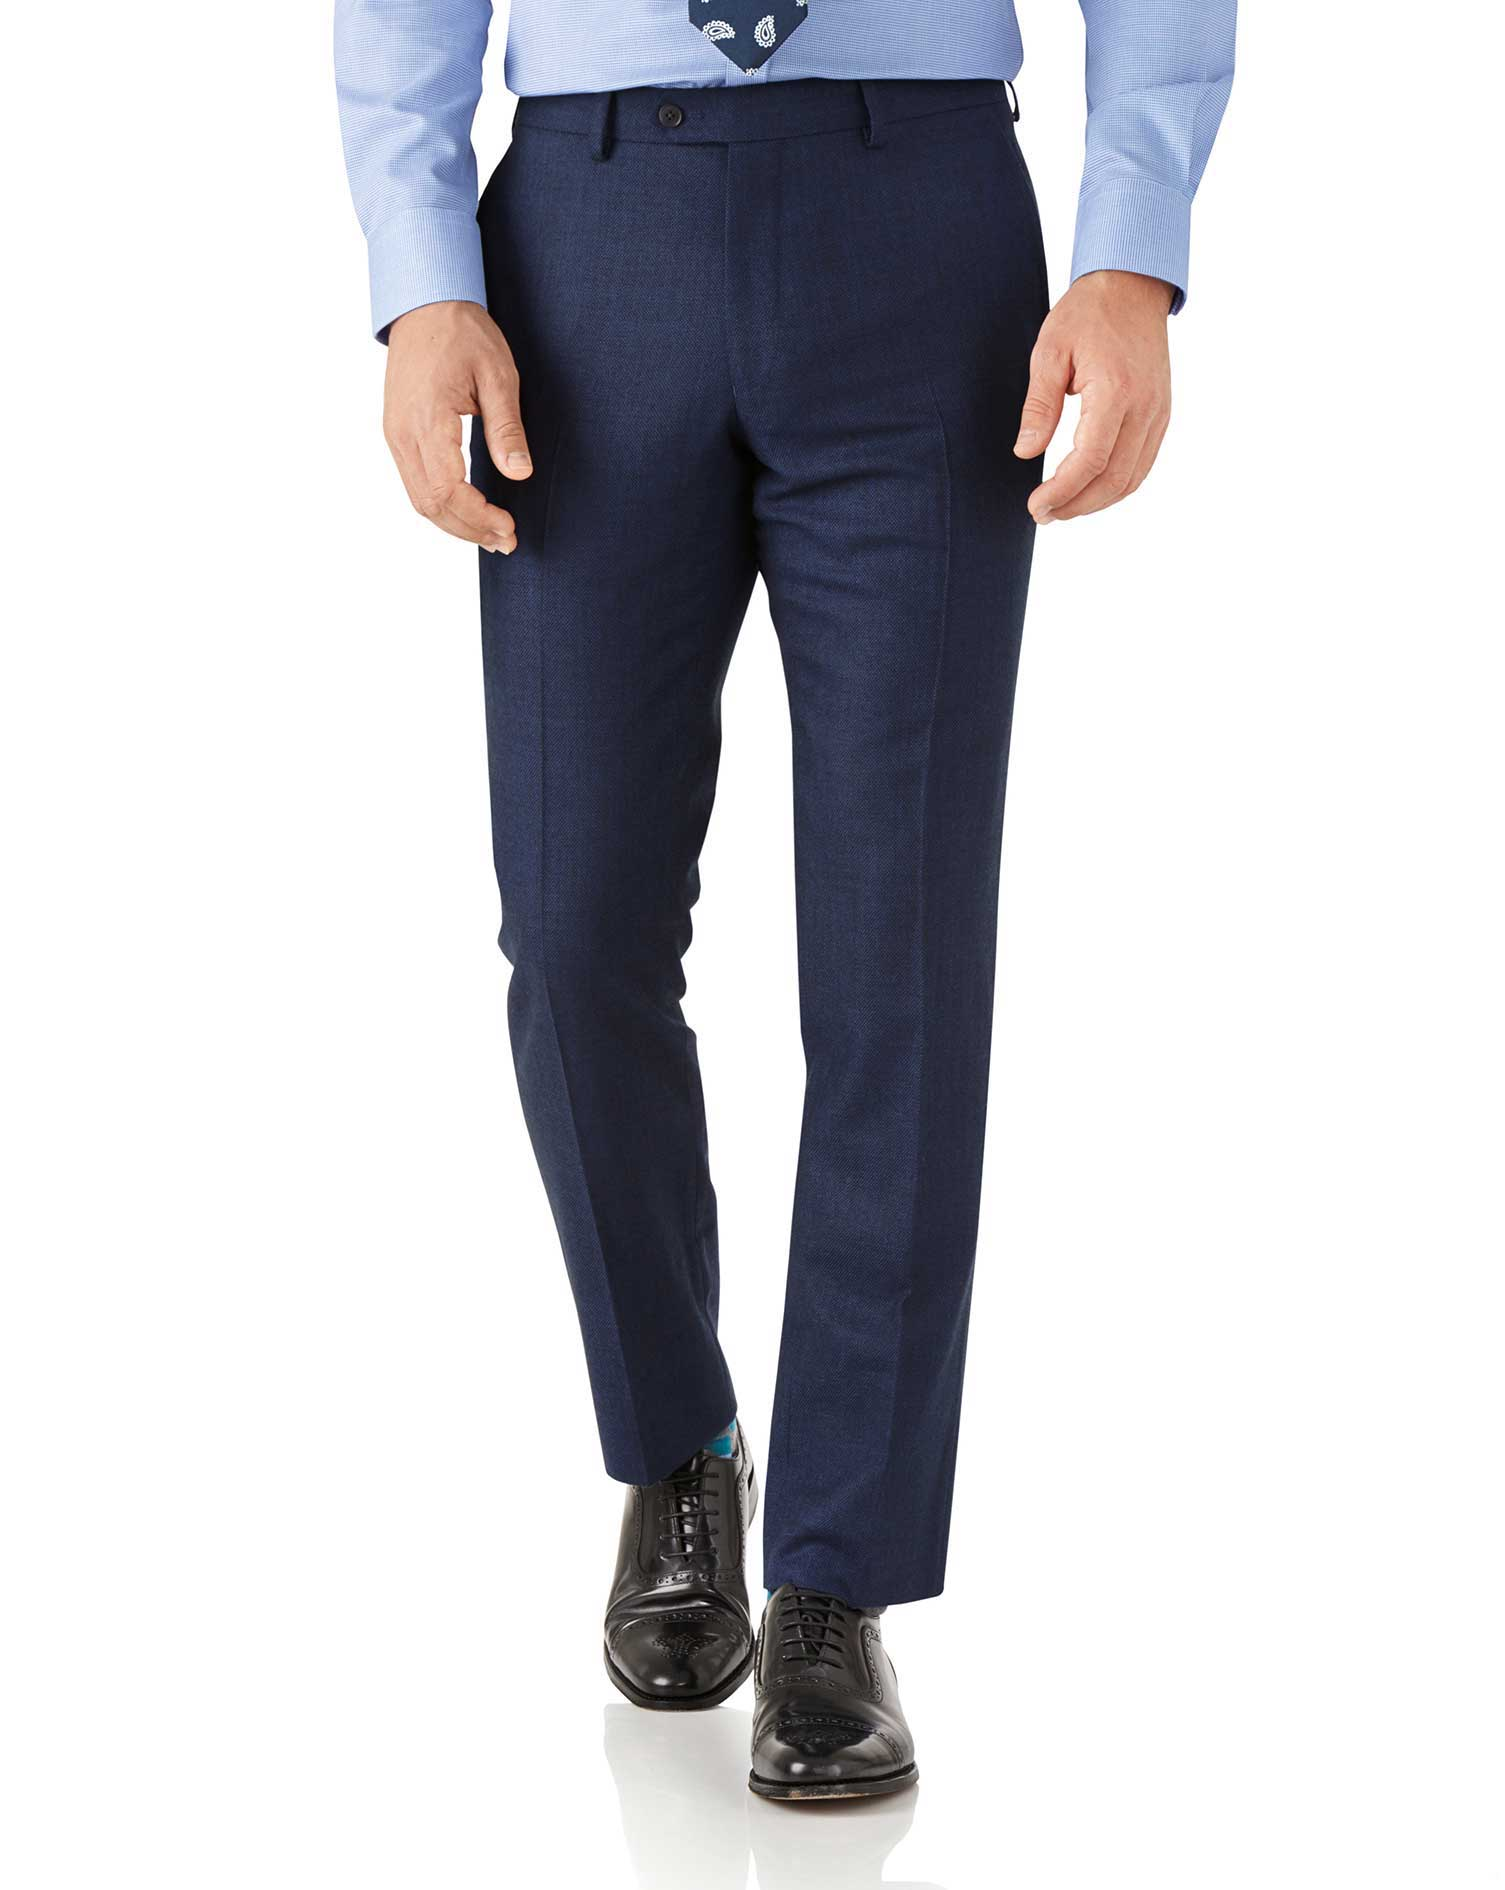 Royal Blue Slim Fit Flannel Business Suit Trousers Size W38 L32 by Charles Tyrwhitt